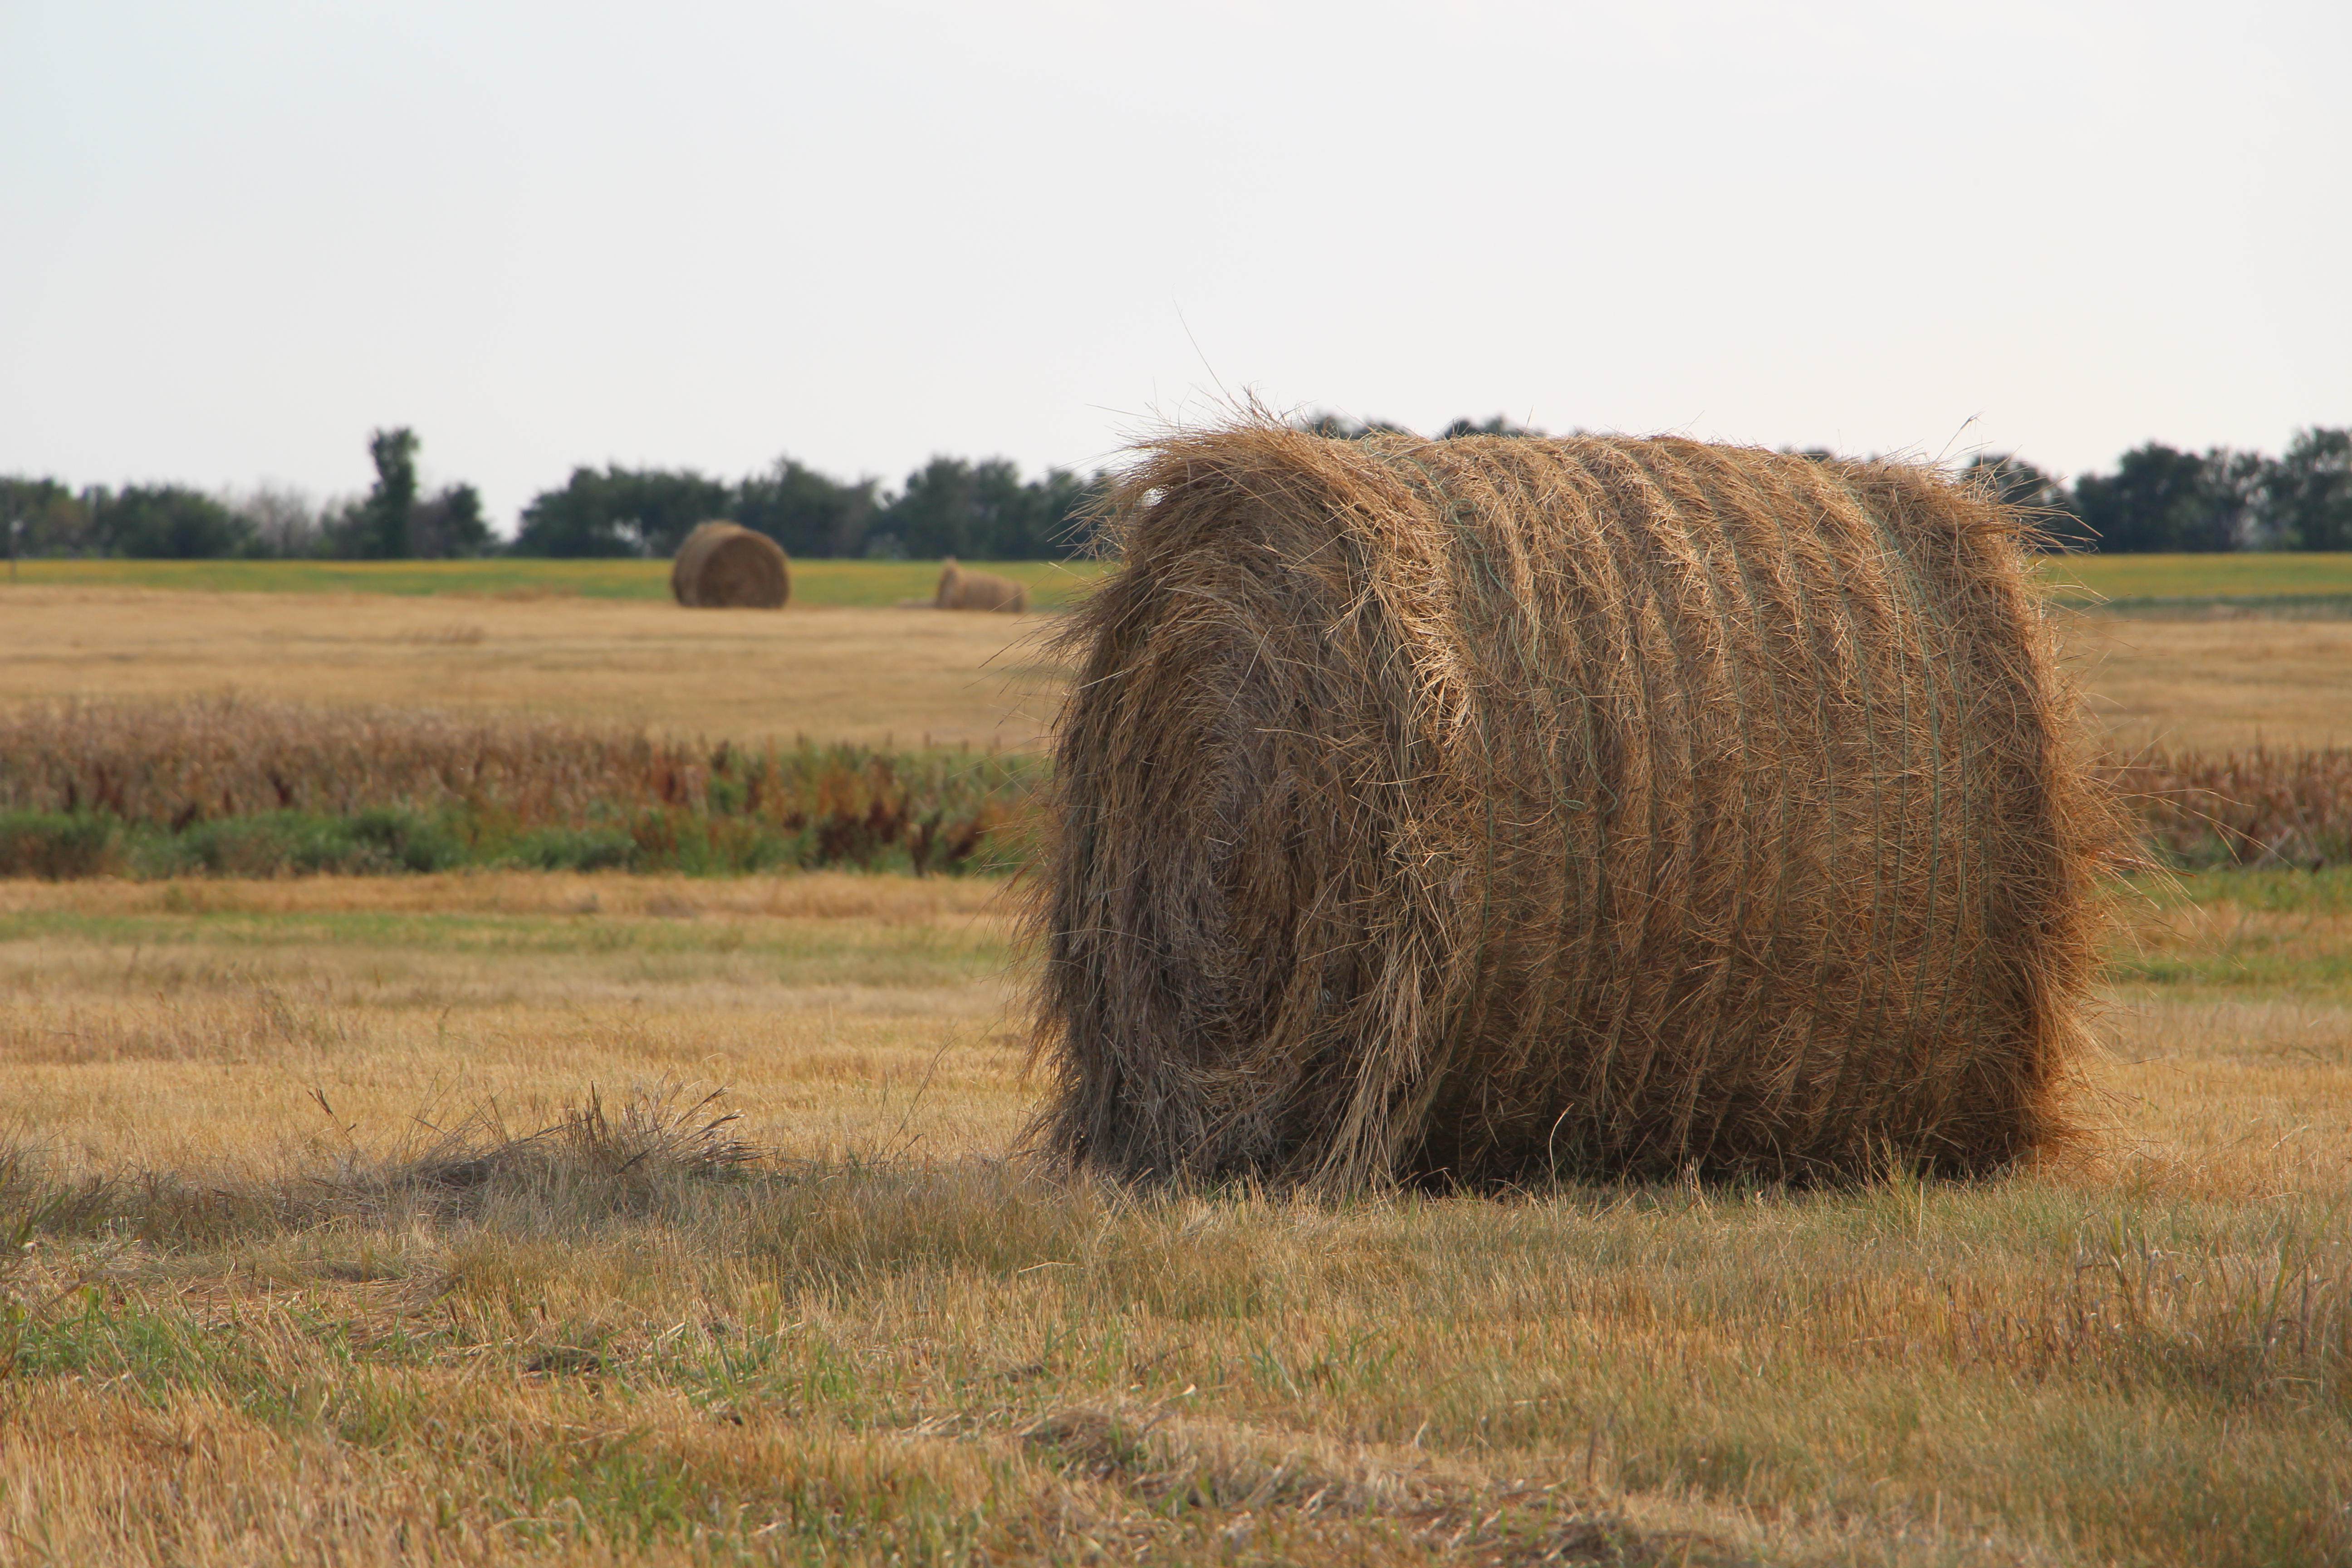 farming hay We have a 16 horse farm in tennessee and use about 80 tons of hay per year the rest, about 60-70 tons we sell to neighboring farms to help reduce our cost of production remember, you should reseed when necessary, fertilize every year, spray for weeds and then cut, ted, rake and roll the hay.